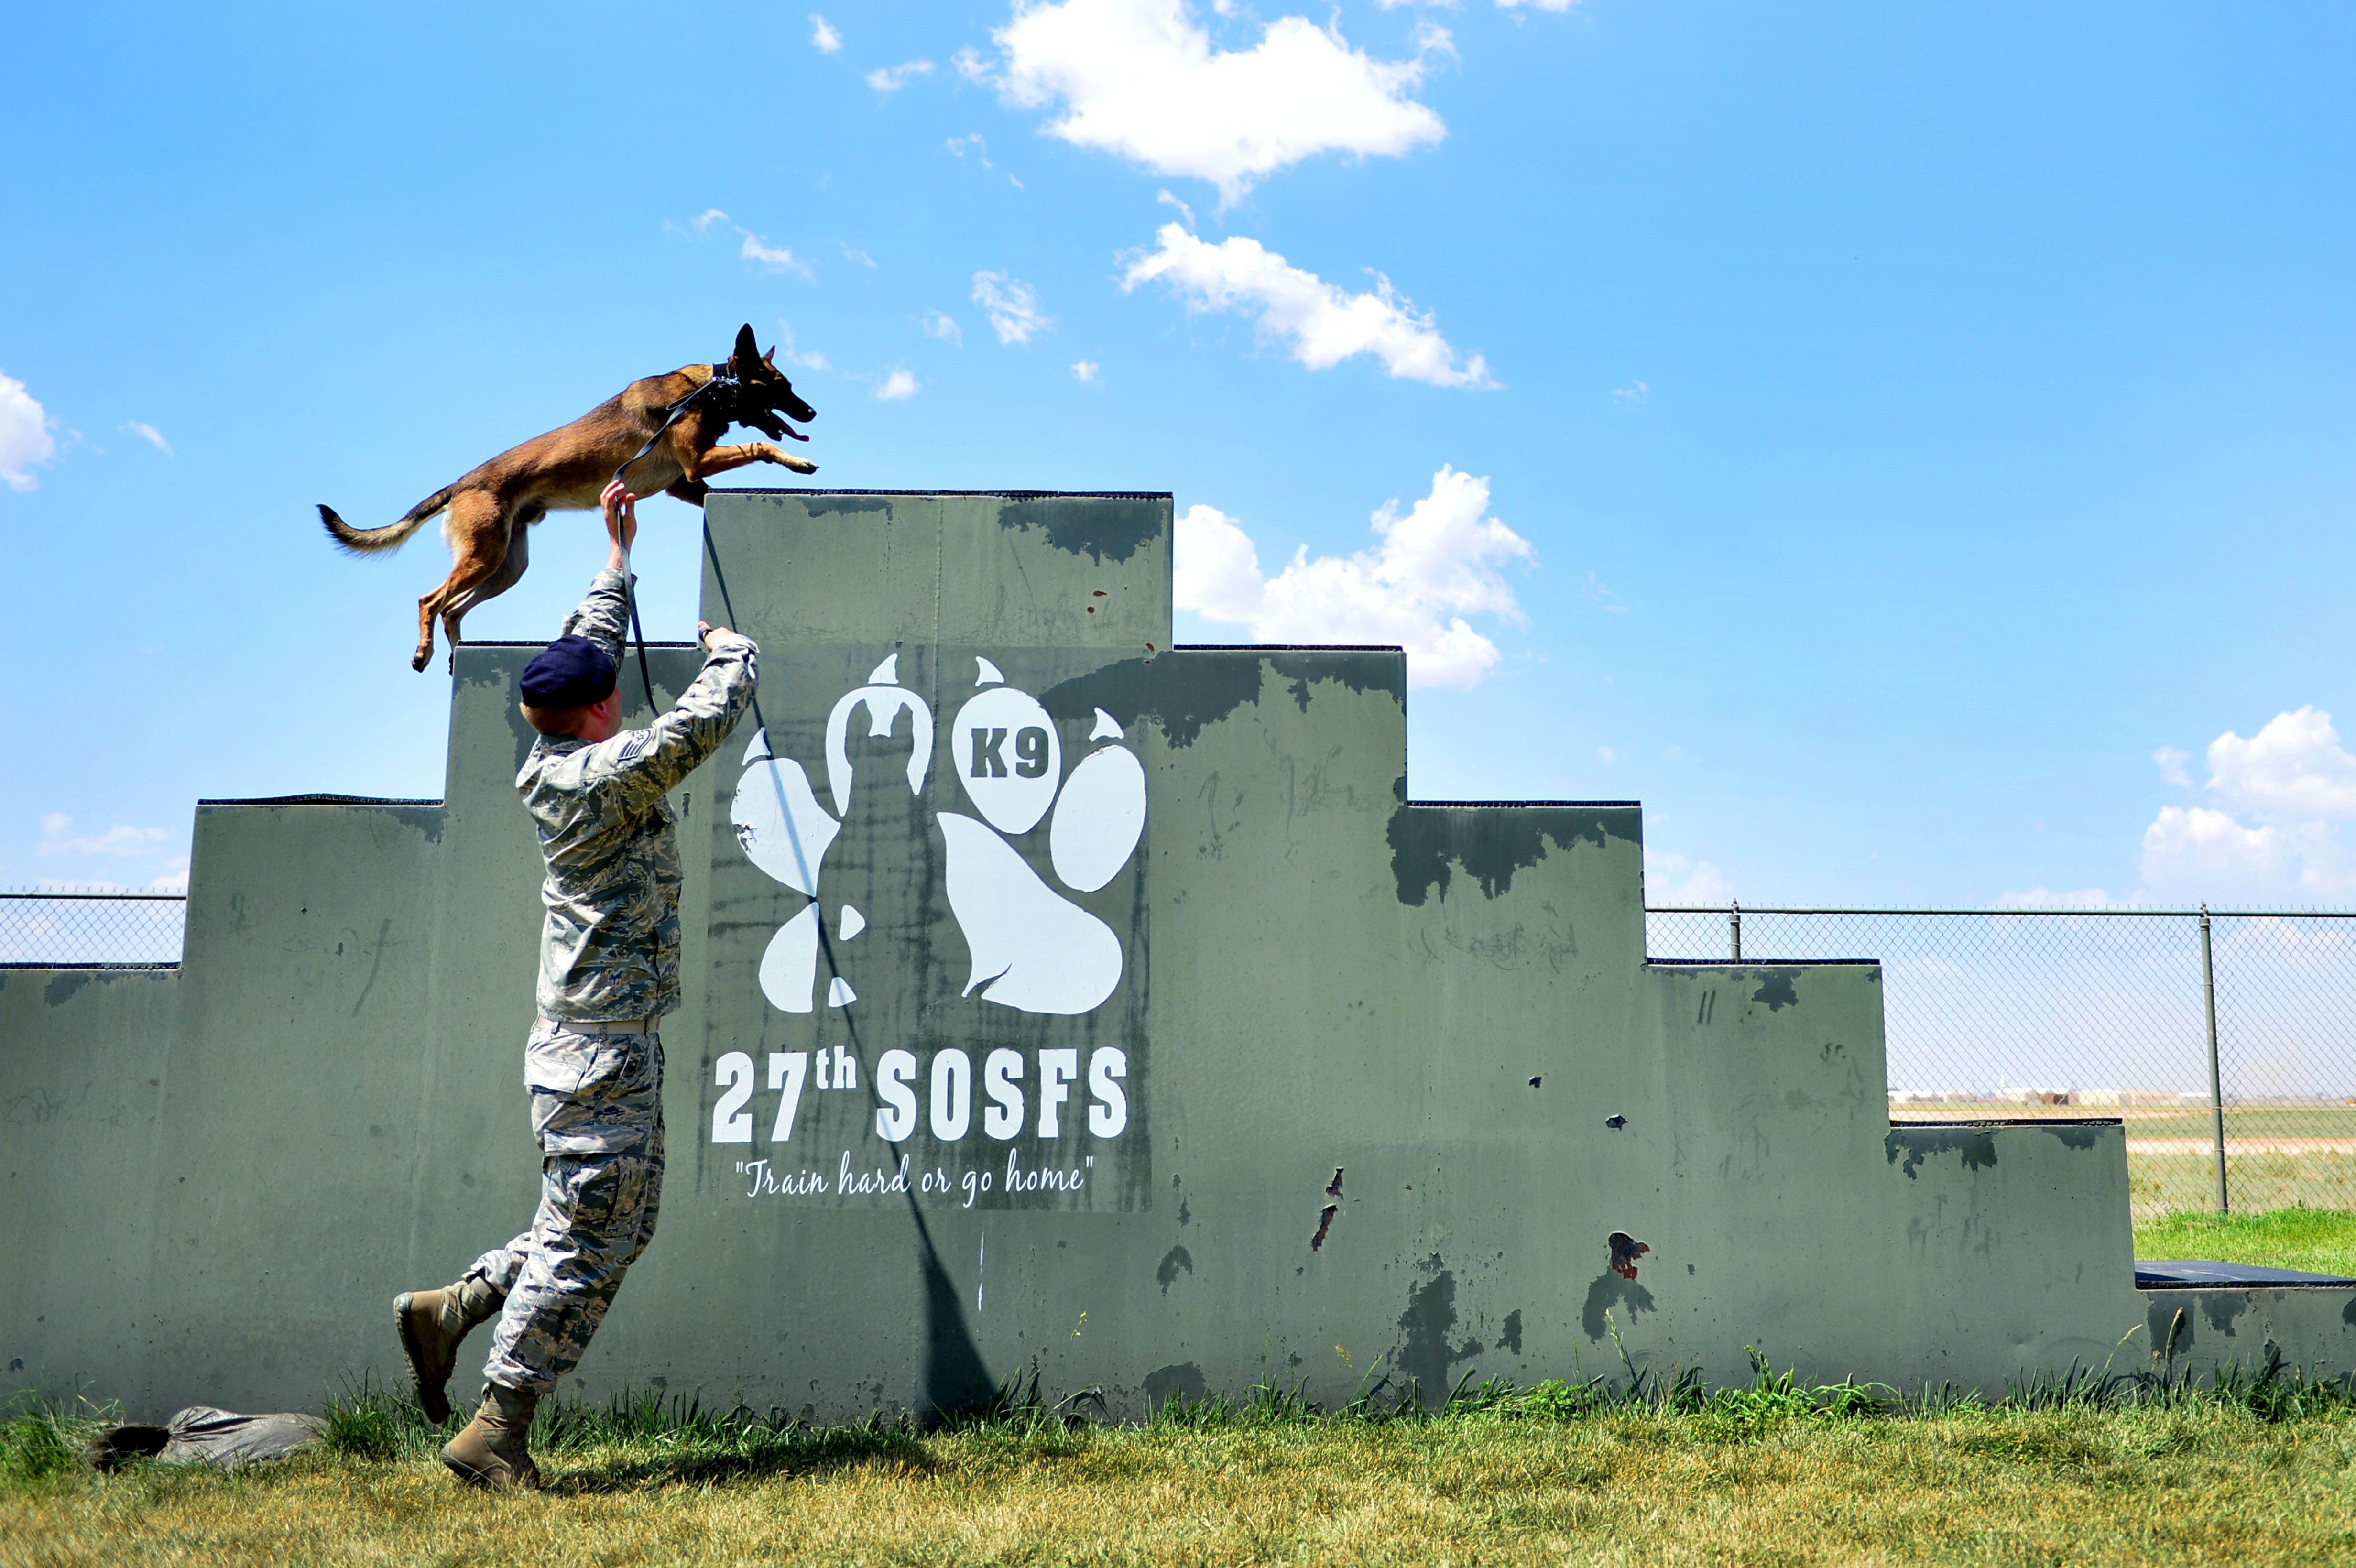 Military working dog, Chandler runs up a staircase in an